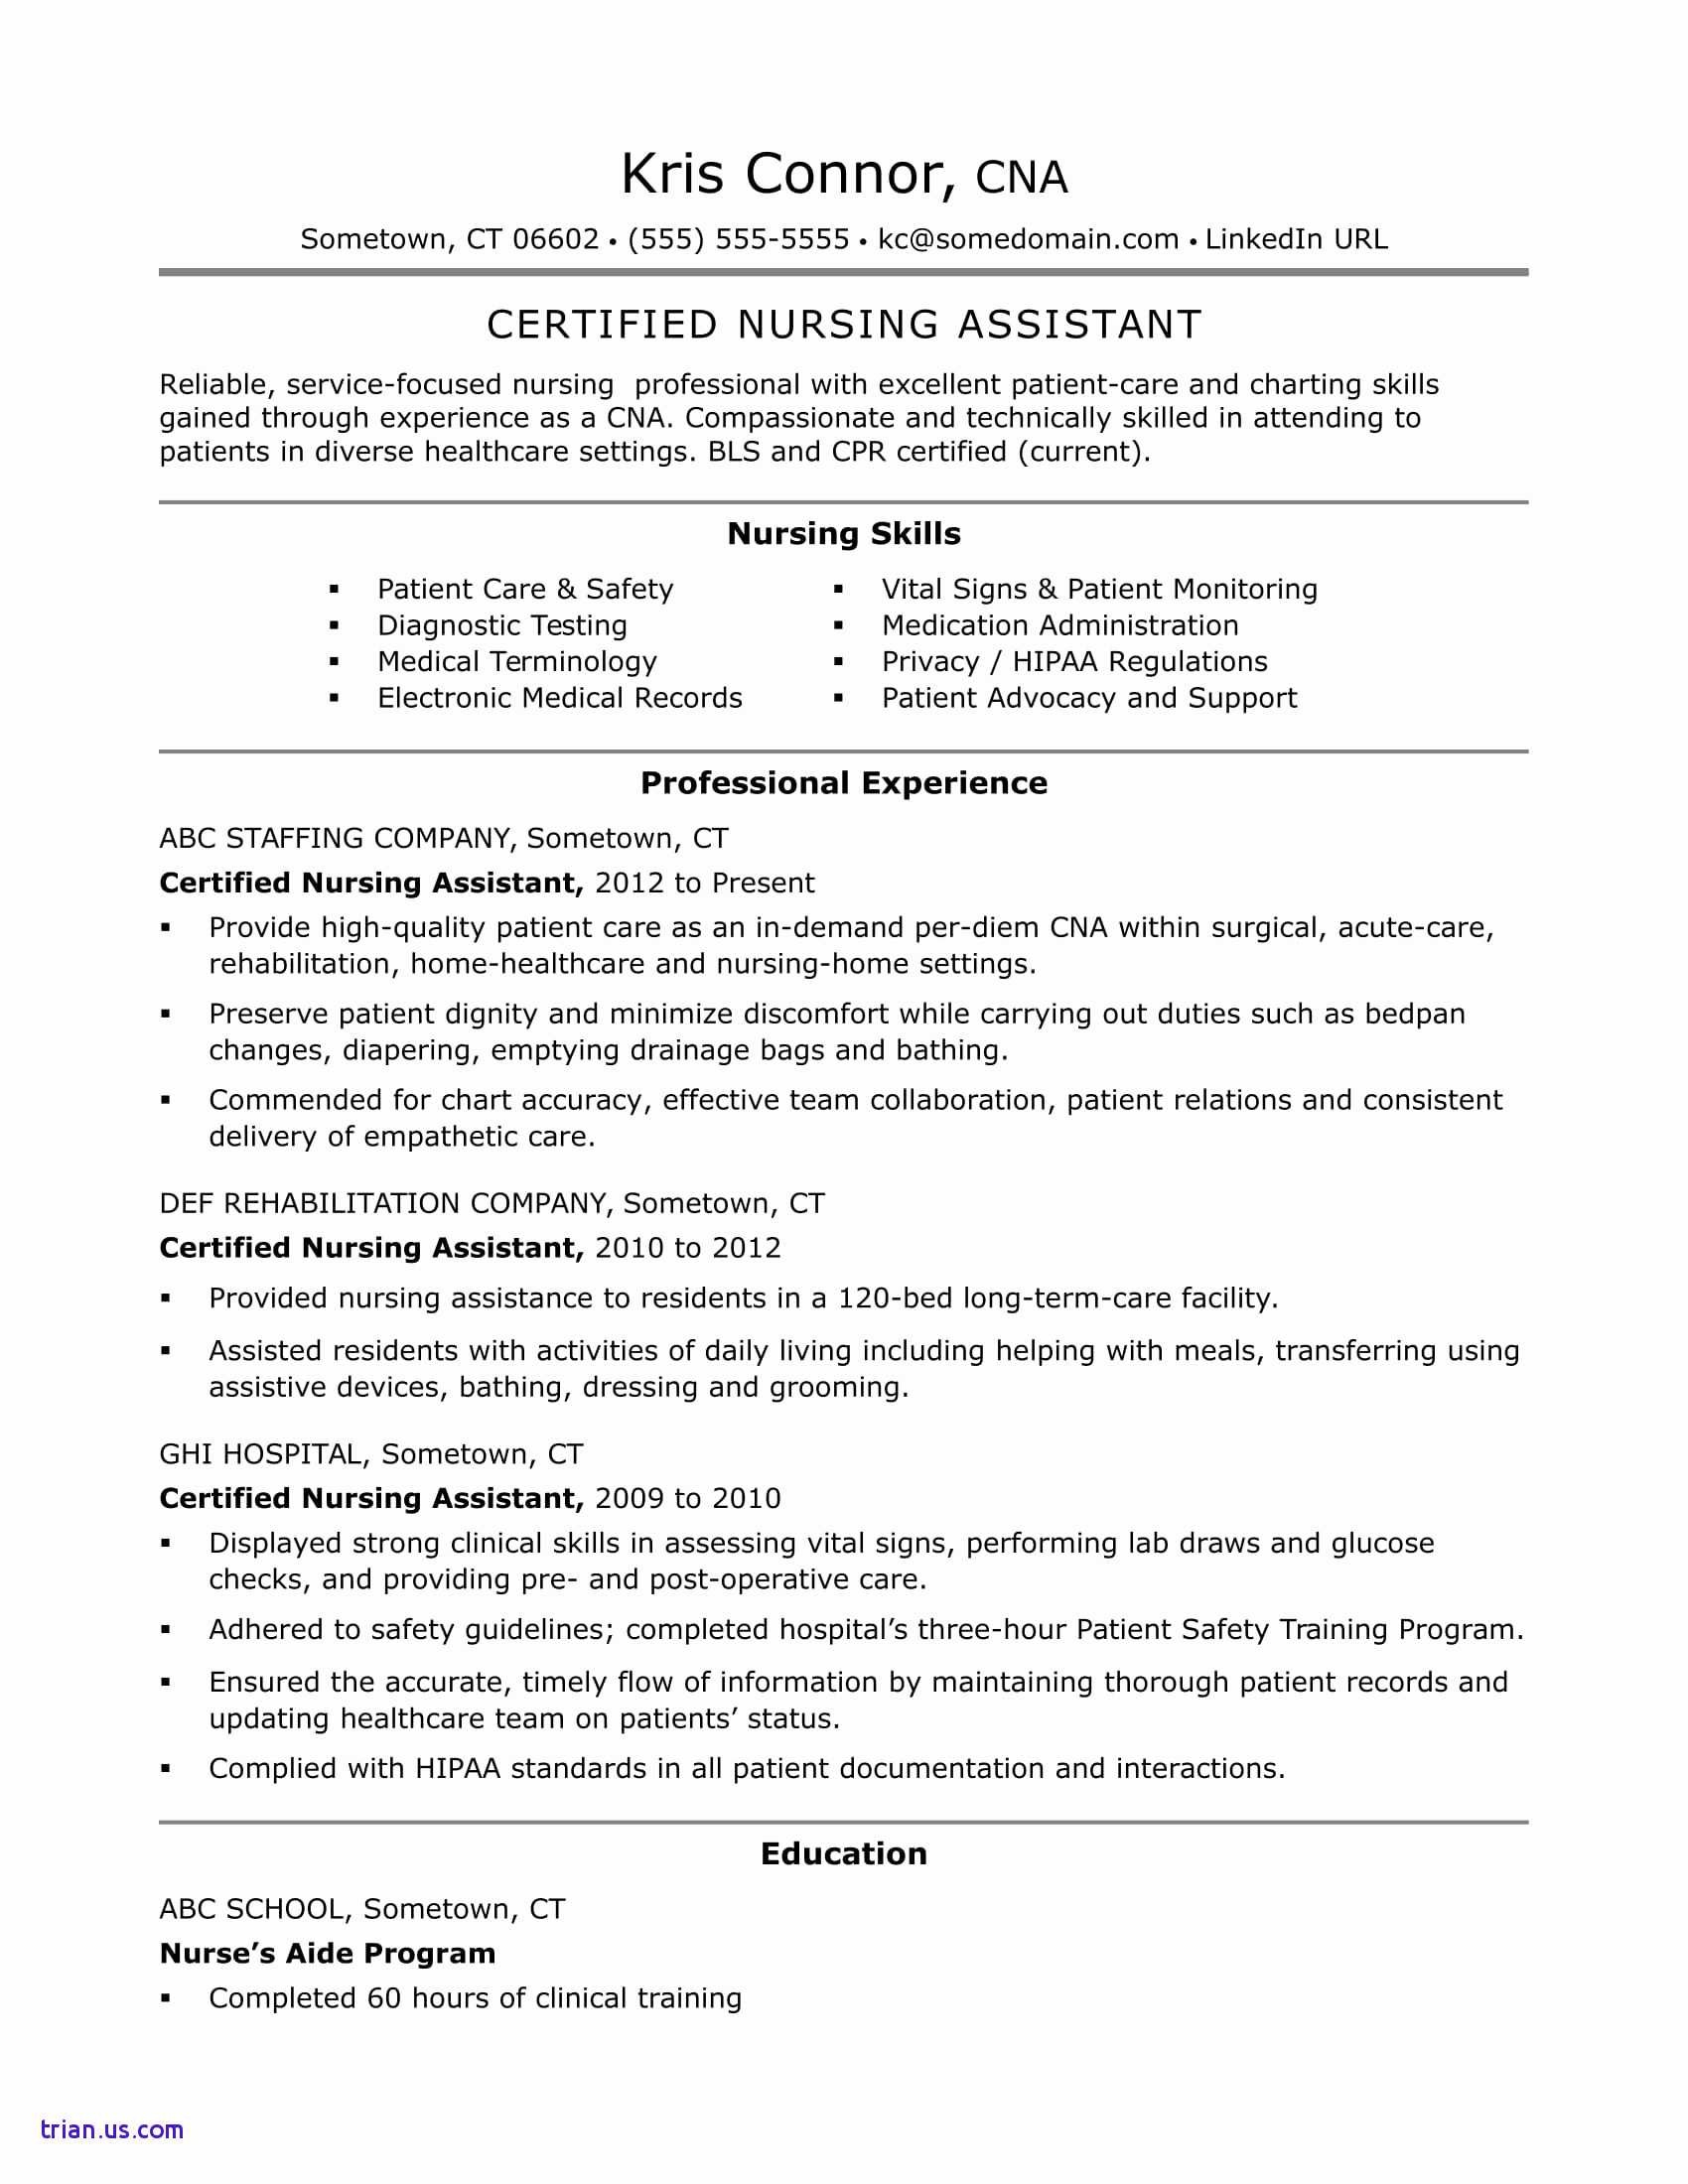 nursing assistant resume examples example-Cna Resume Examples Elegant Rn Bsn Resume Awesome Nurse Resume 0d 1-l